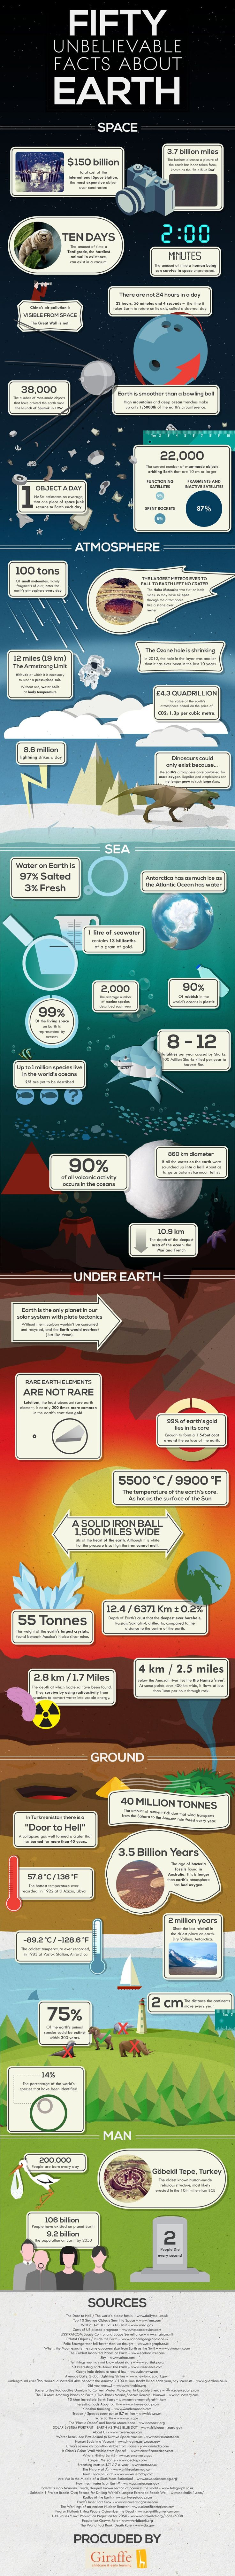 Happy Earth Day everyone! Here's 50 facts about earth, via geekdad.com